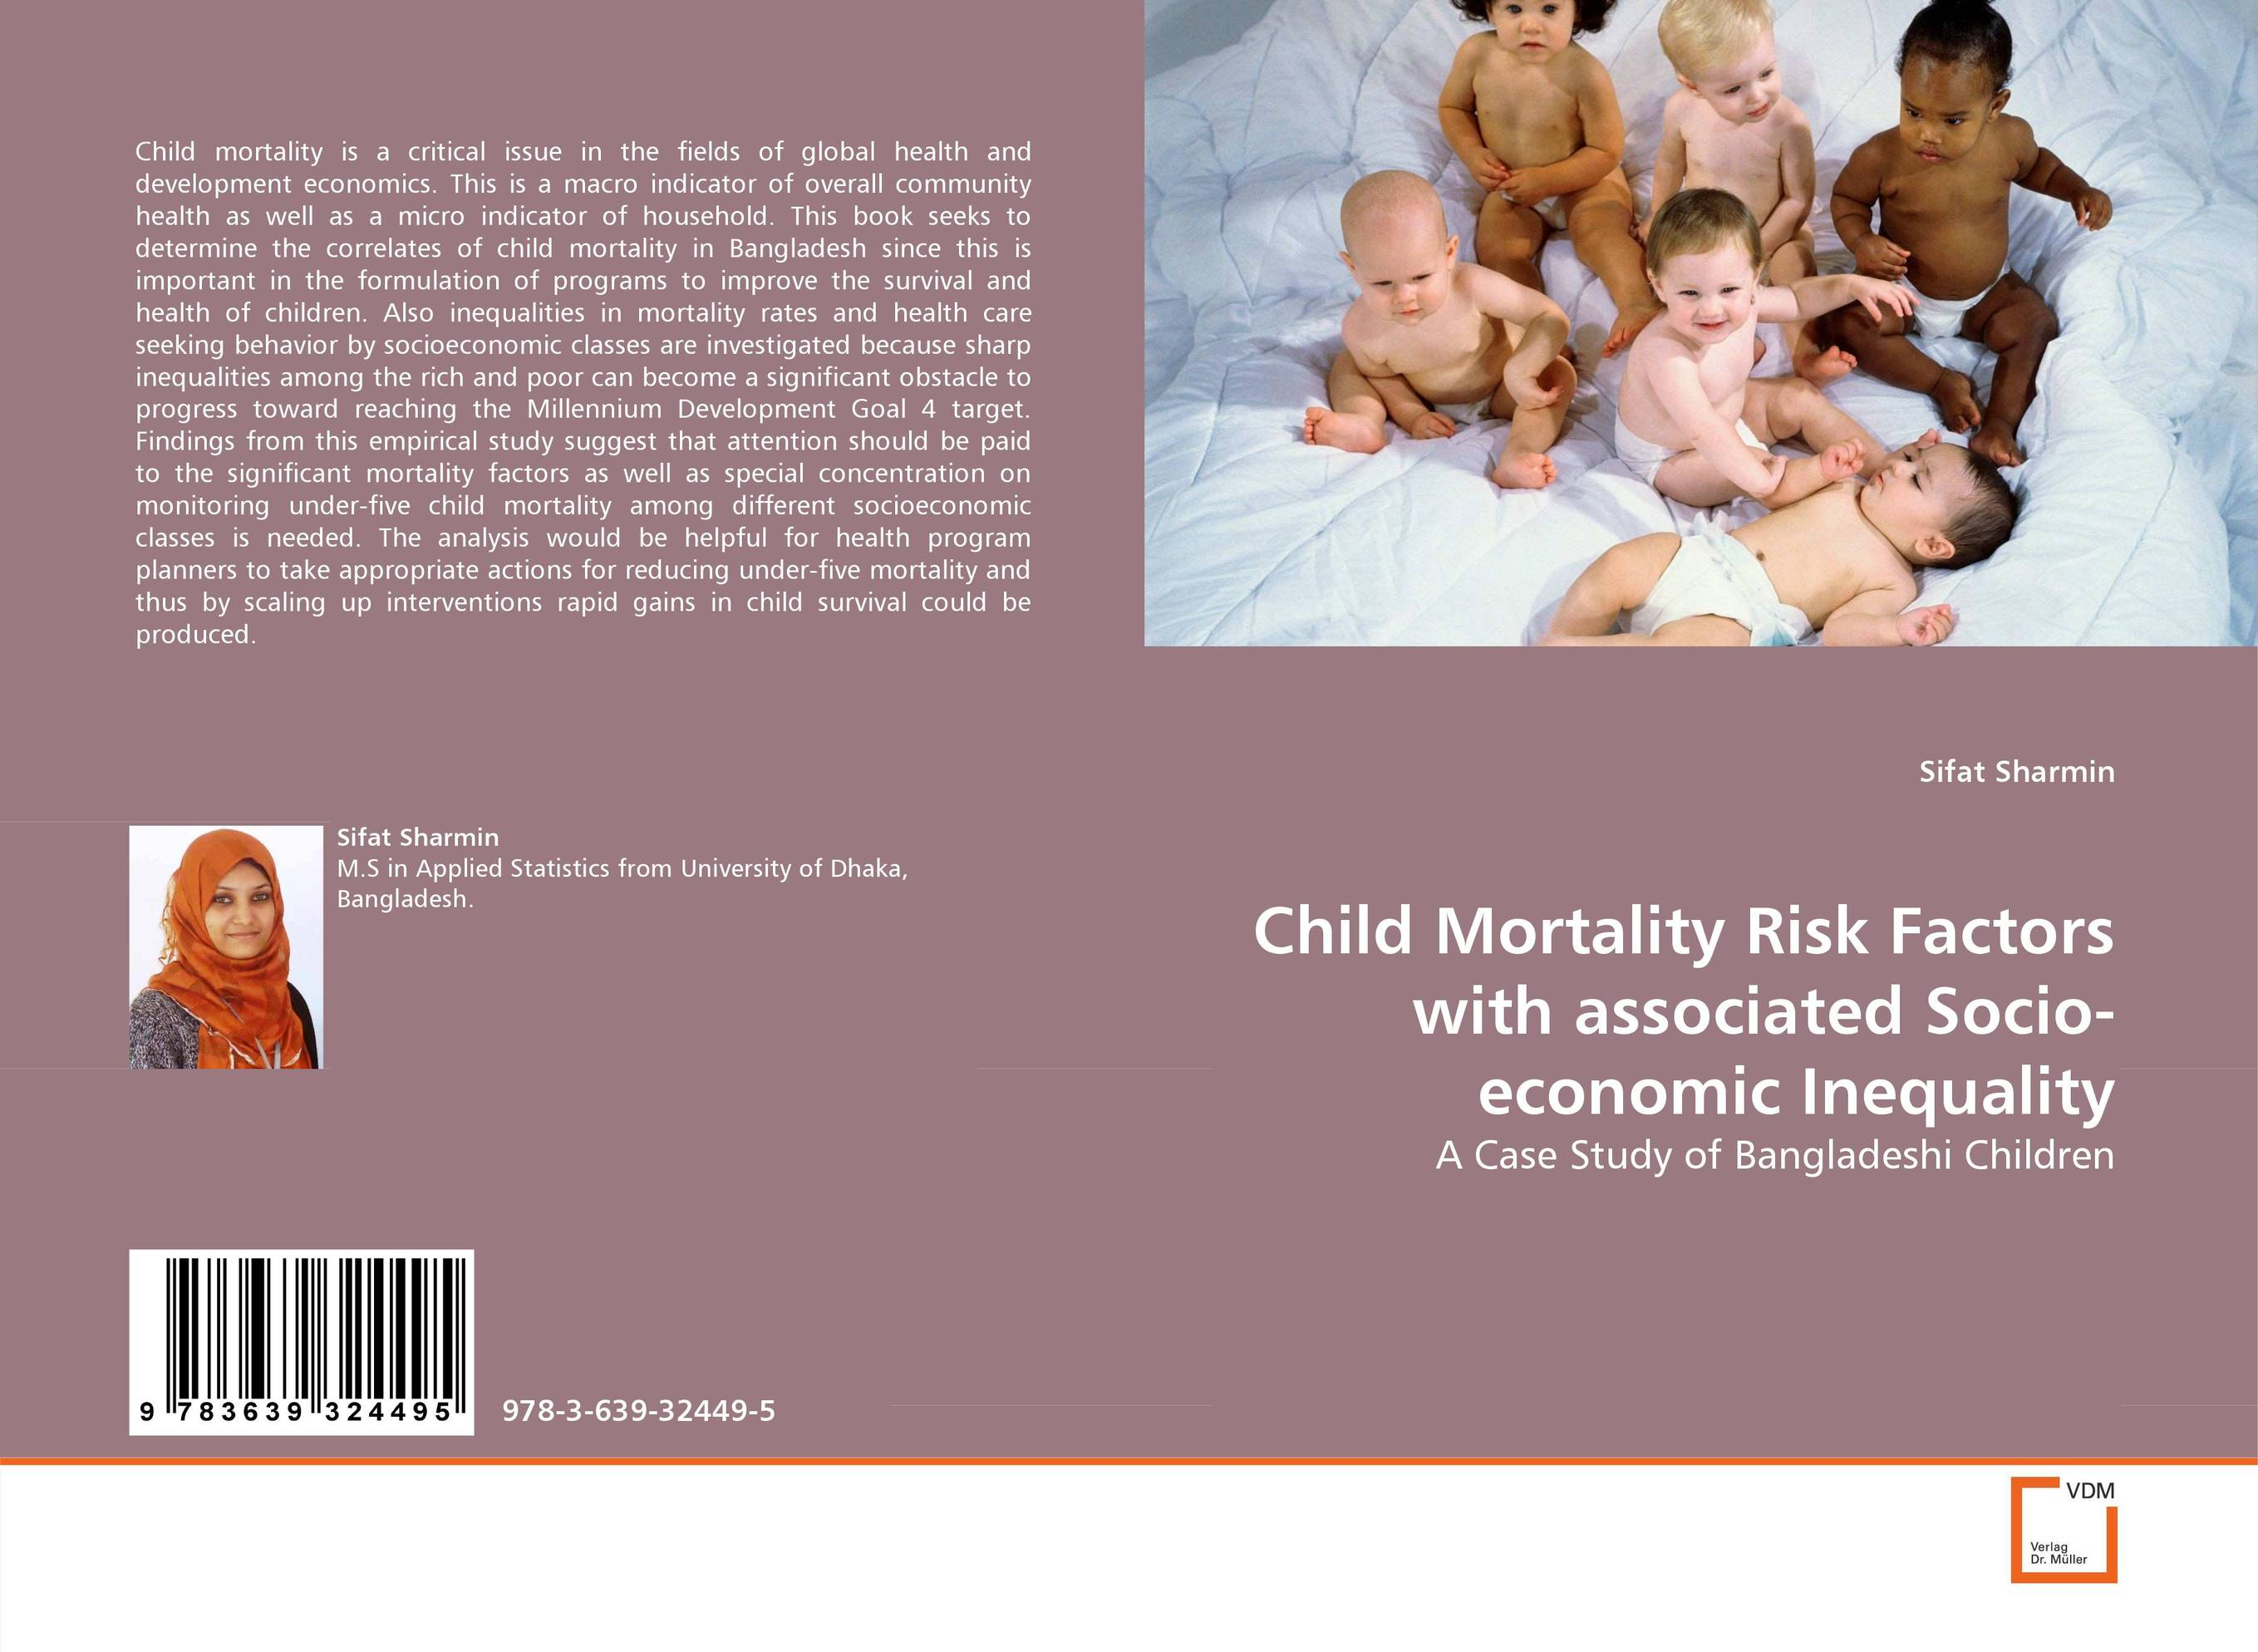 Child Mortality Risk Factors with associated Socio-economic Inequality factors associated with bone health in young adults